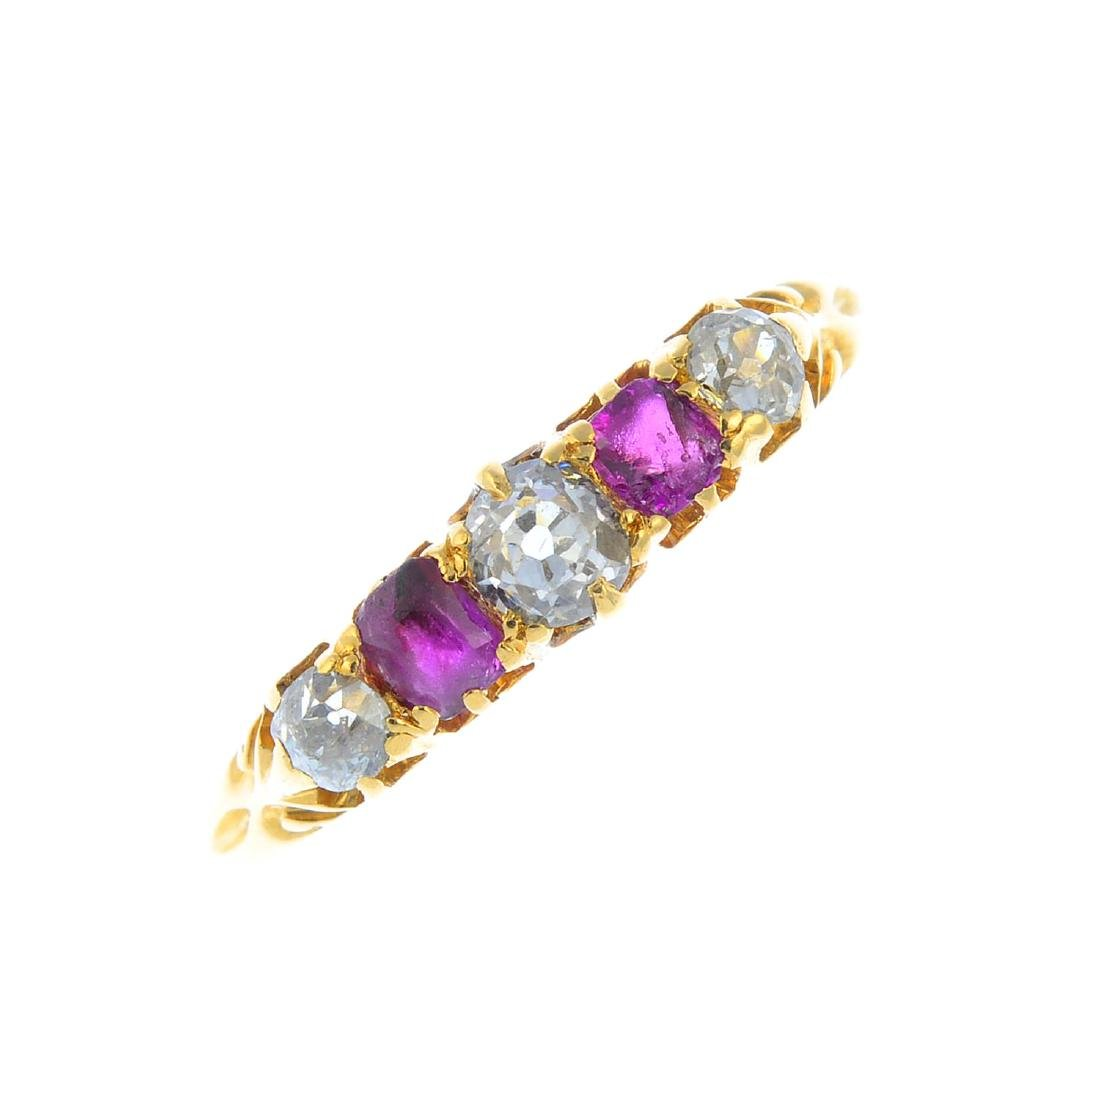 A diamond and ruby five-stone ring. The alternating